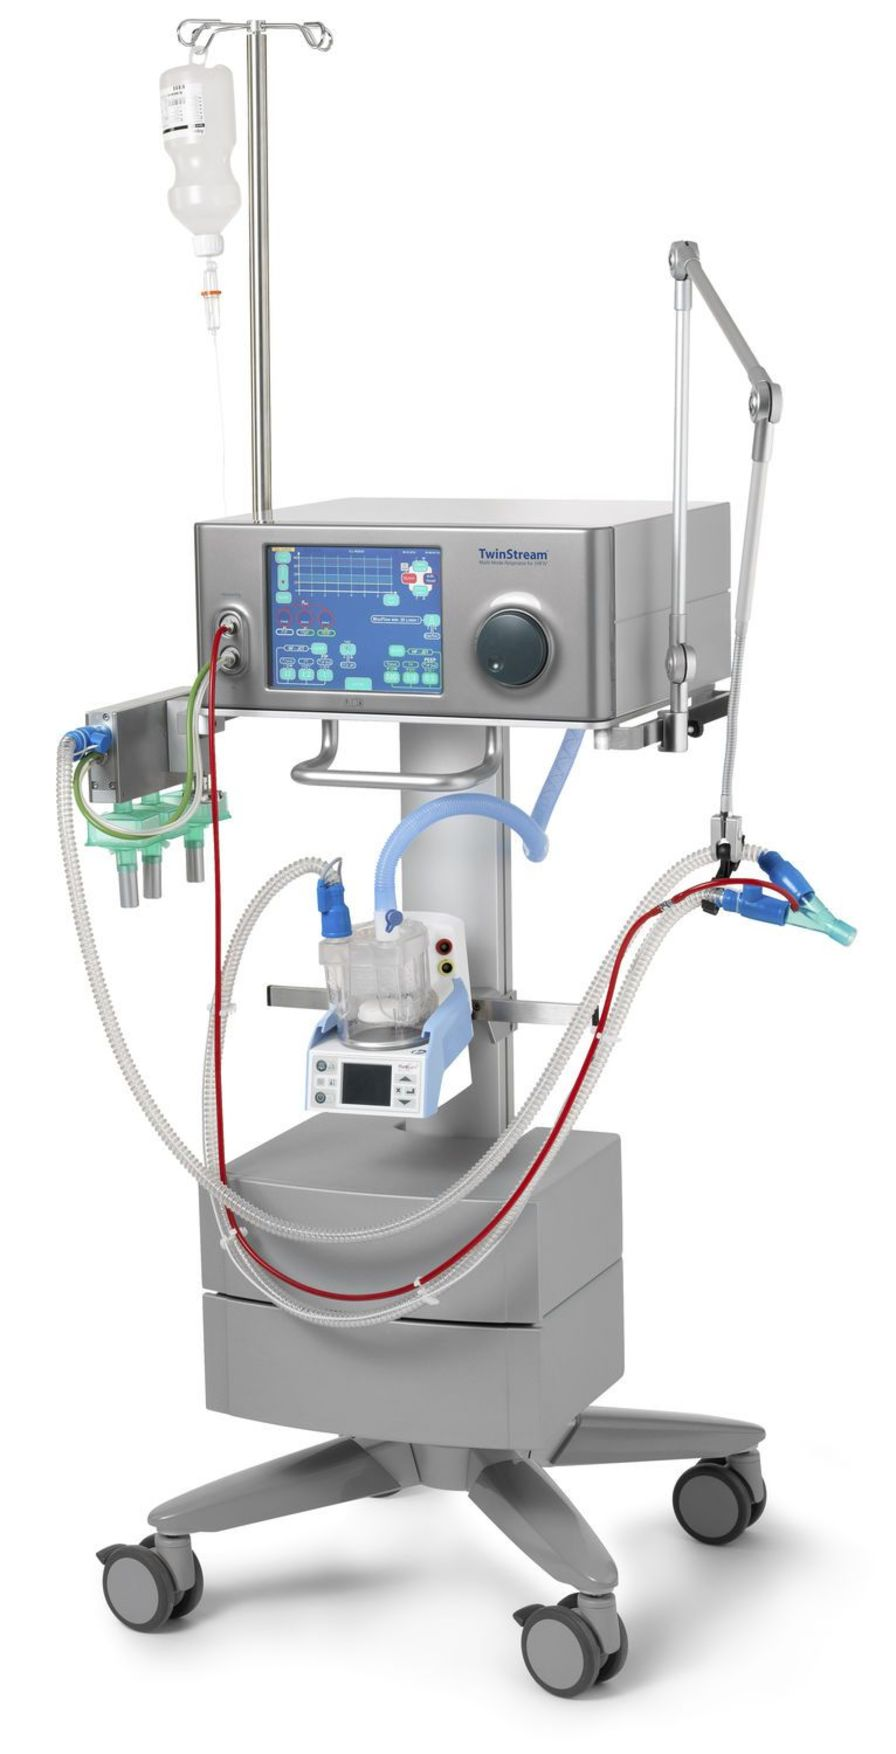 High-frequency jet ventilator / resuscitation TwinStream™ ICU Carl Reiner GmbH